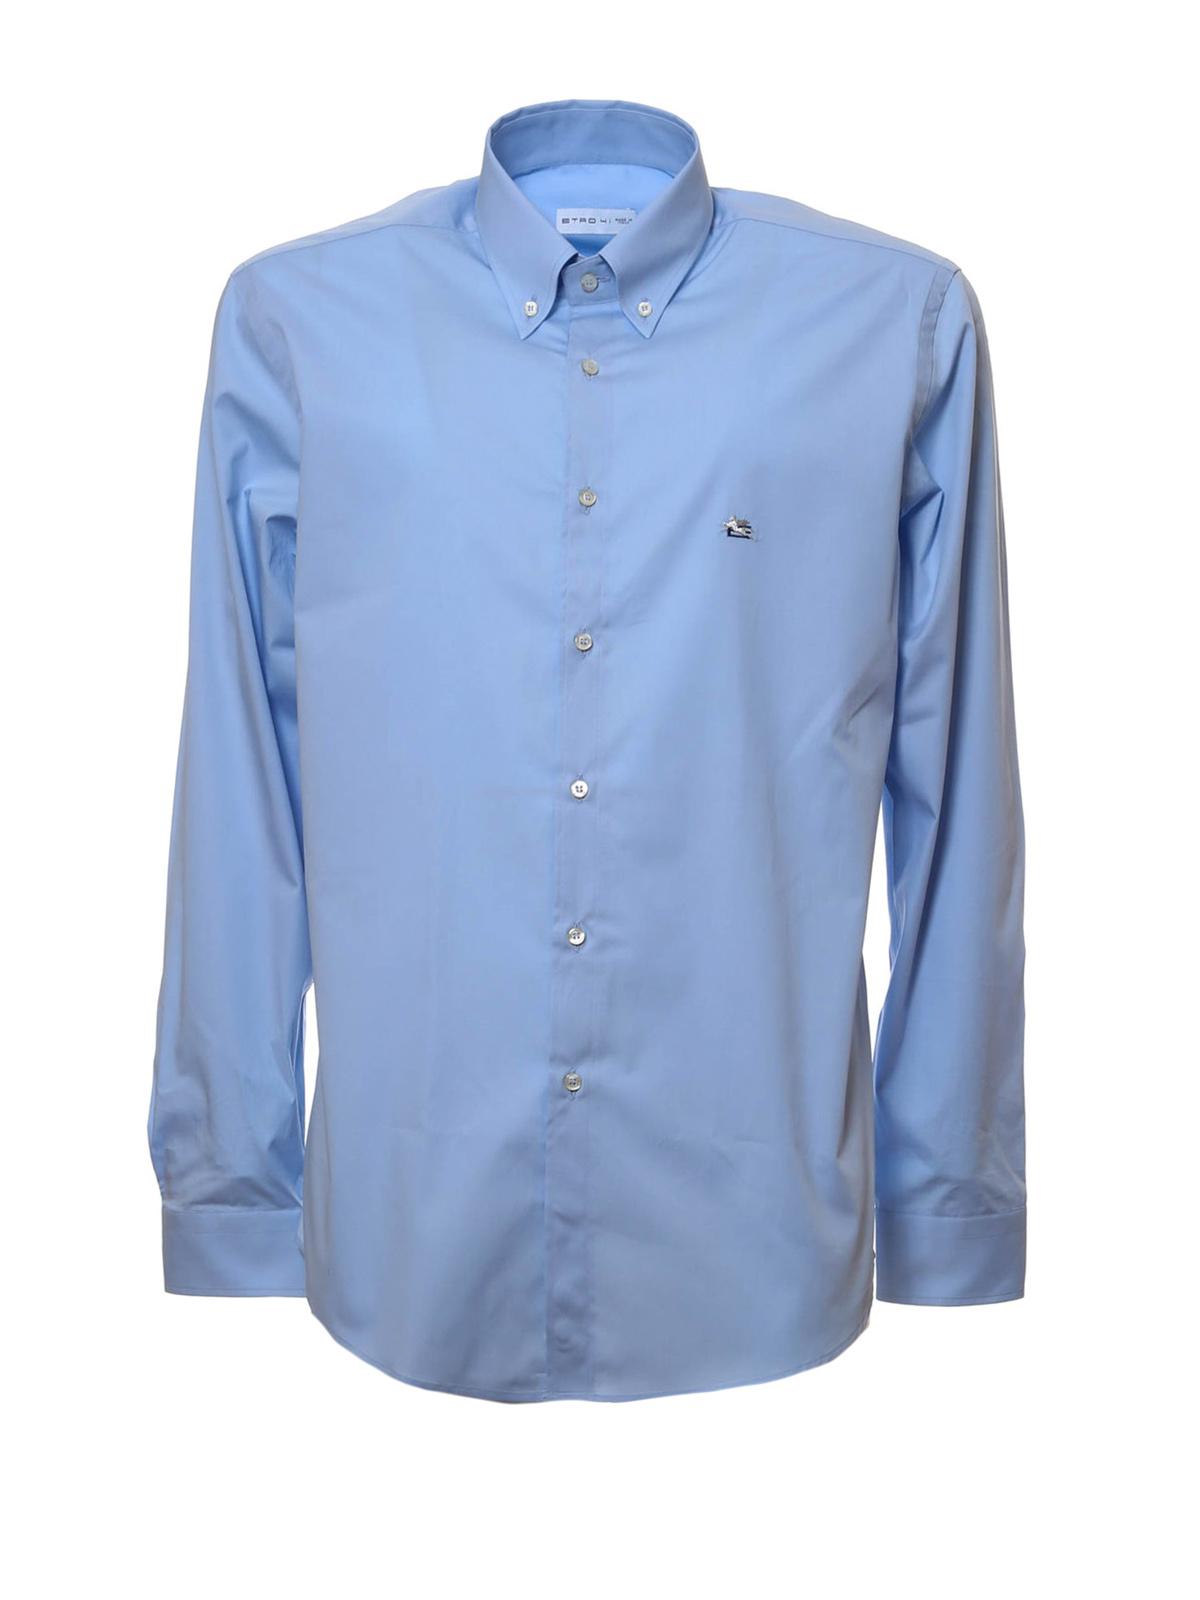 Cotton poplin shirt by etro shirts shop online at for What is a poplin shirt